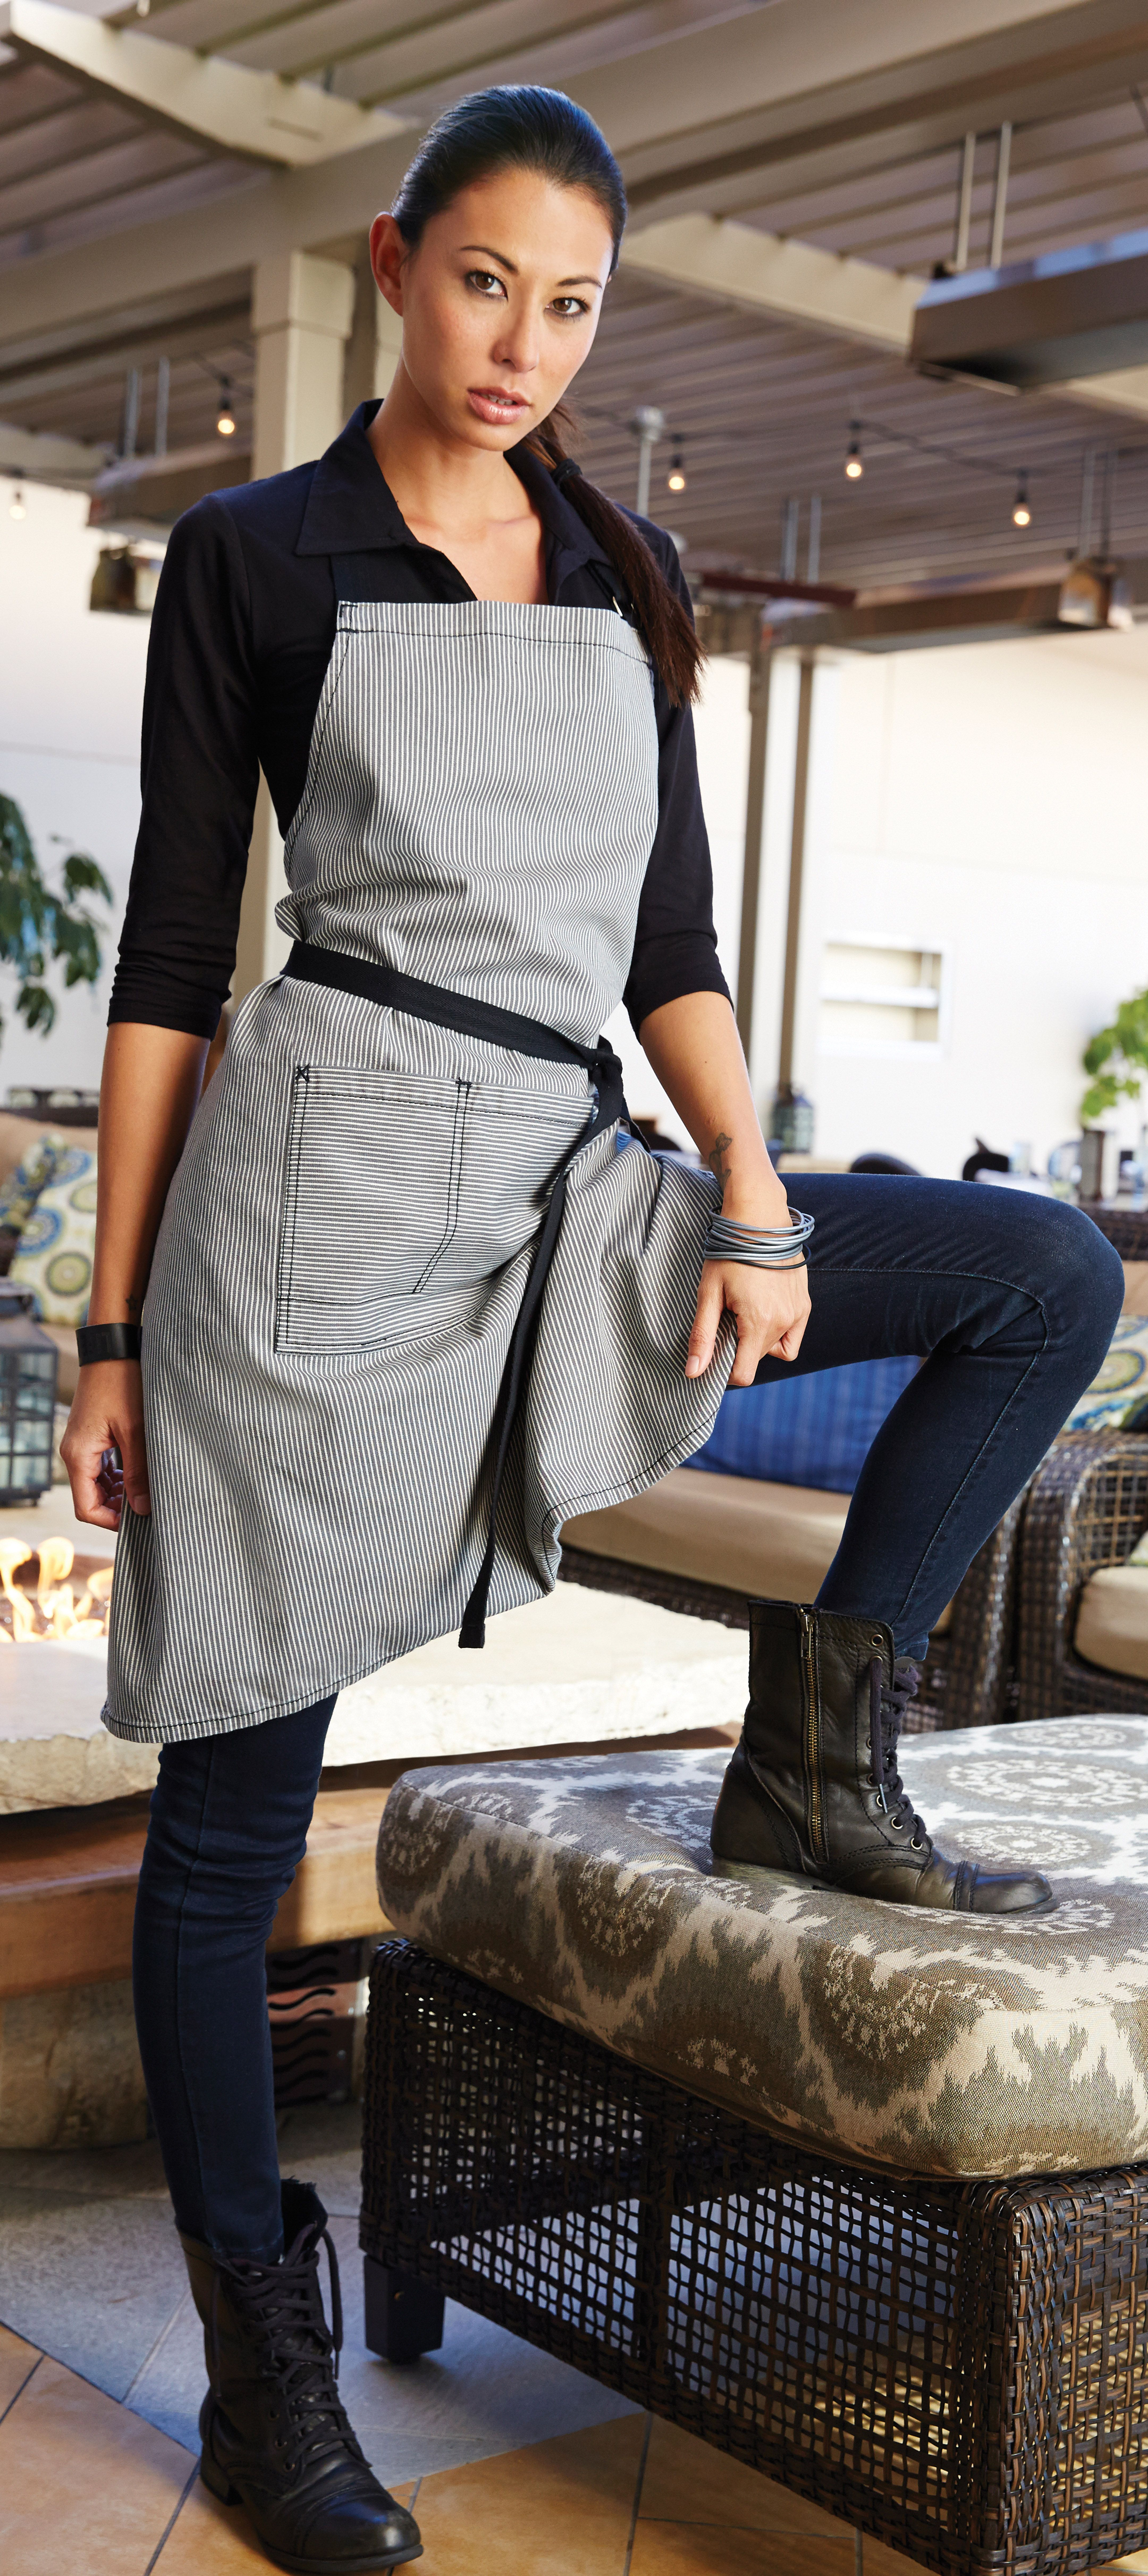 White half apron australia - Get Denim Aprons At Low Wholesale Prices Chef Works Australia Offers A Range Of Items That Is Perfect For Every Kind Of Kitchen Crew